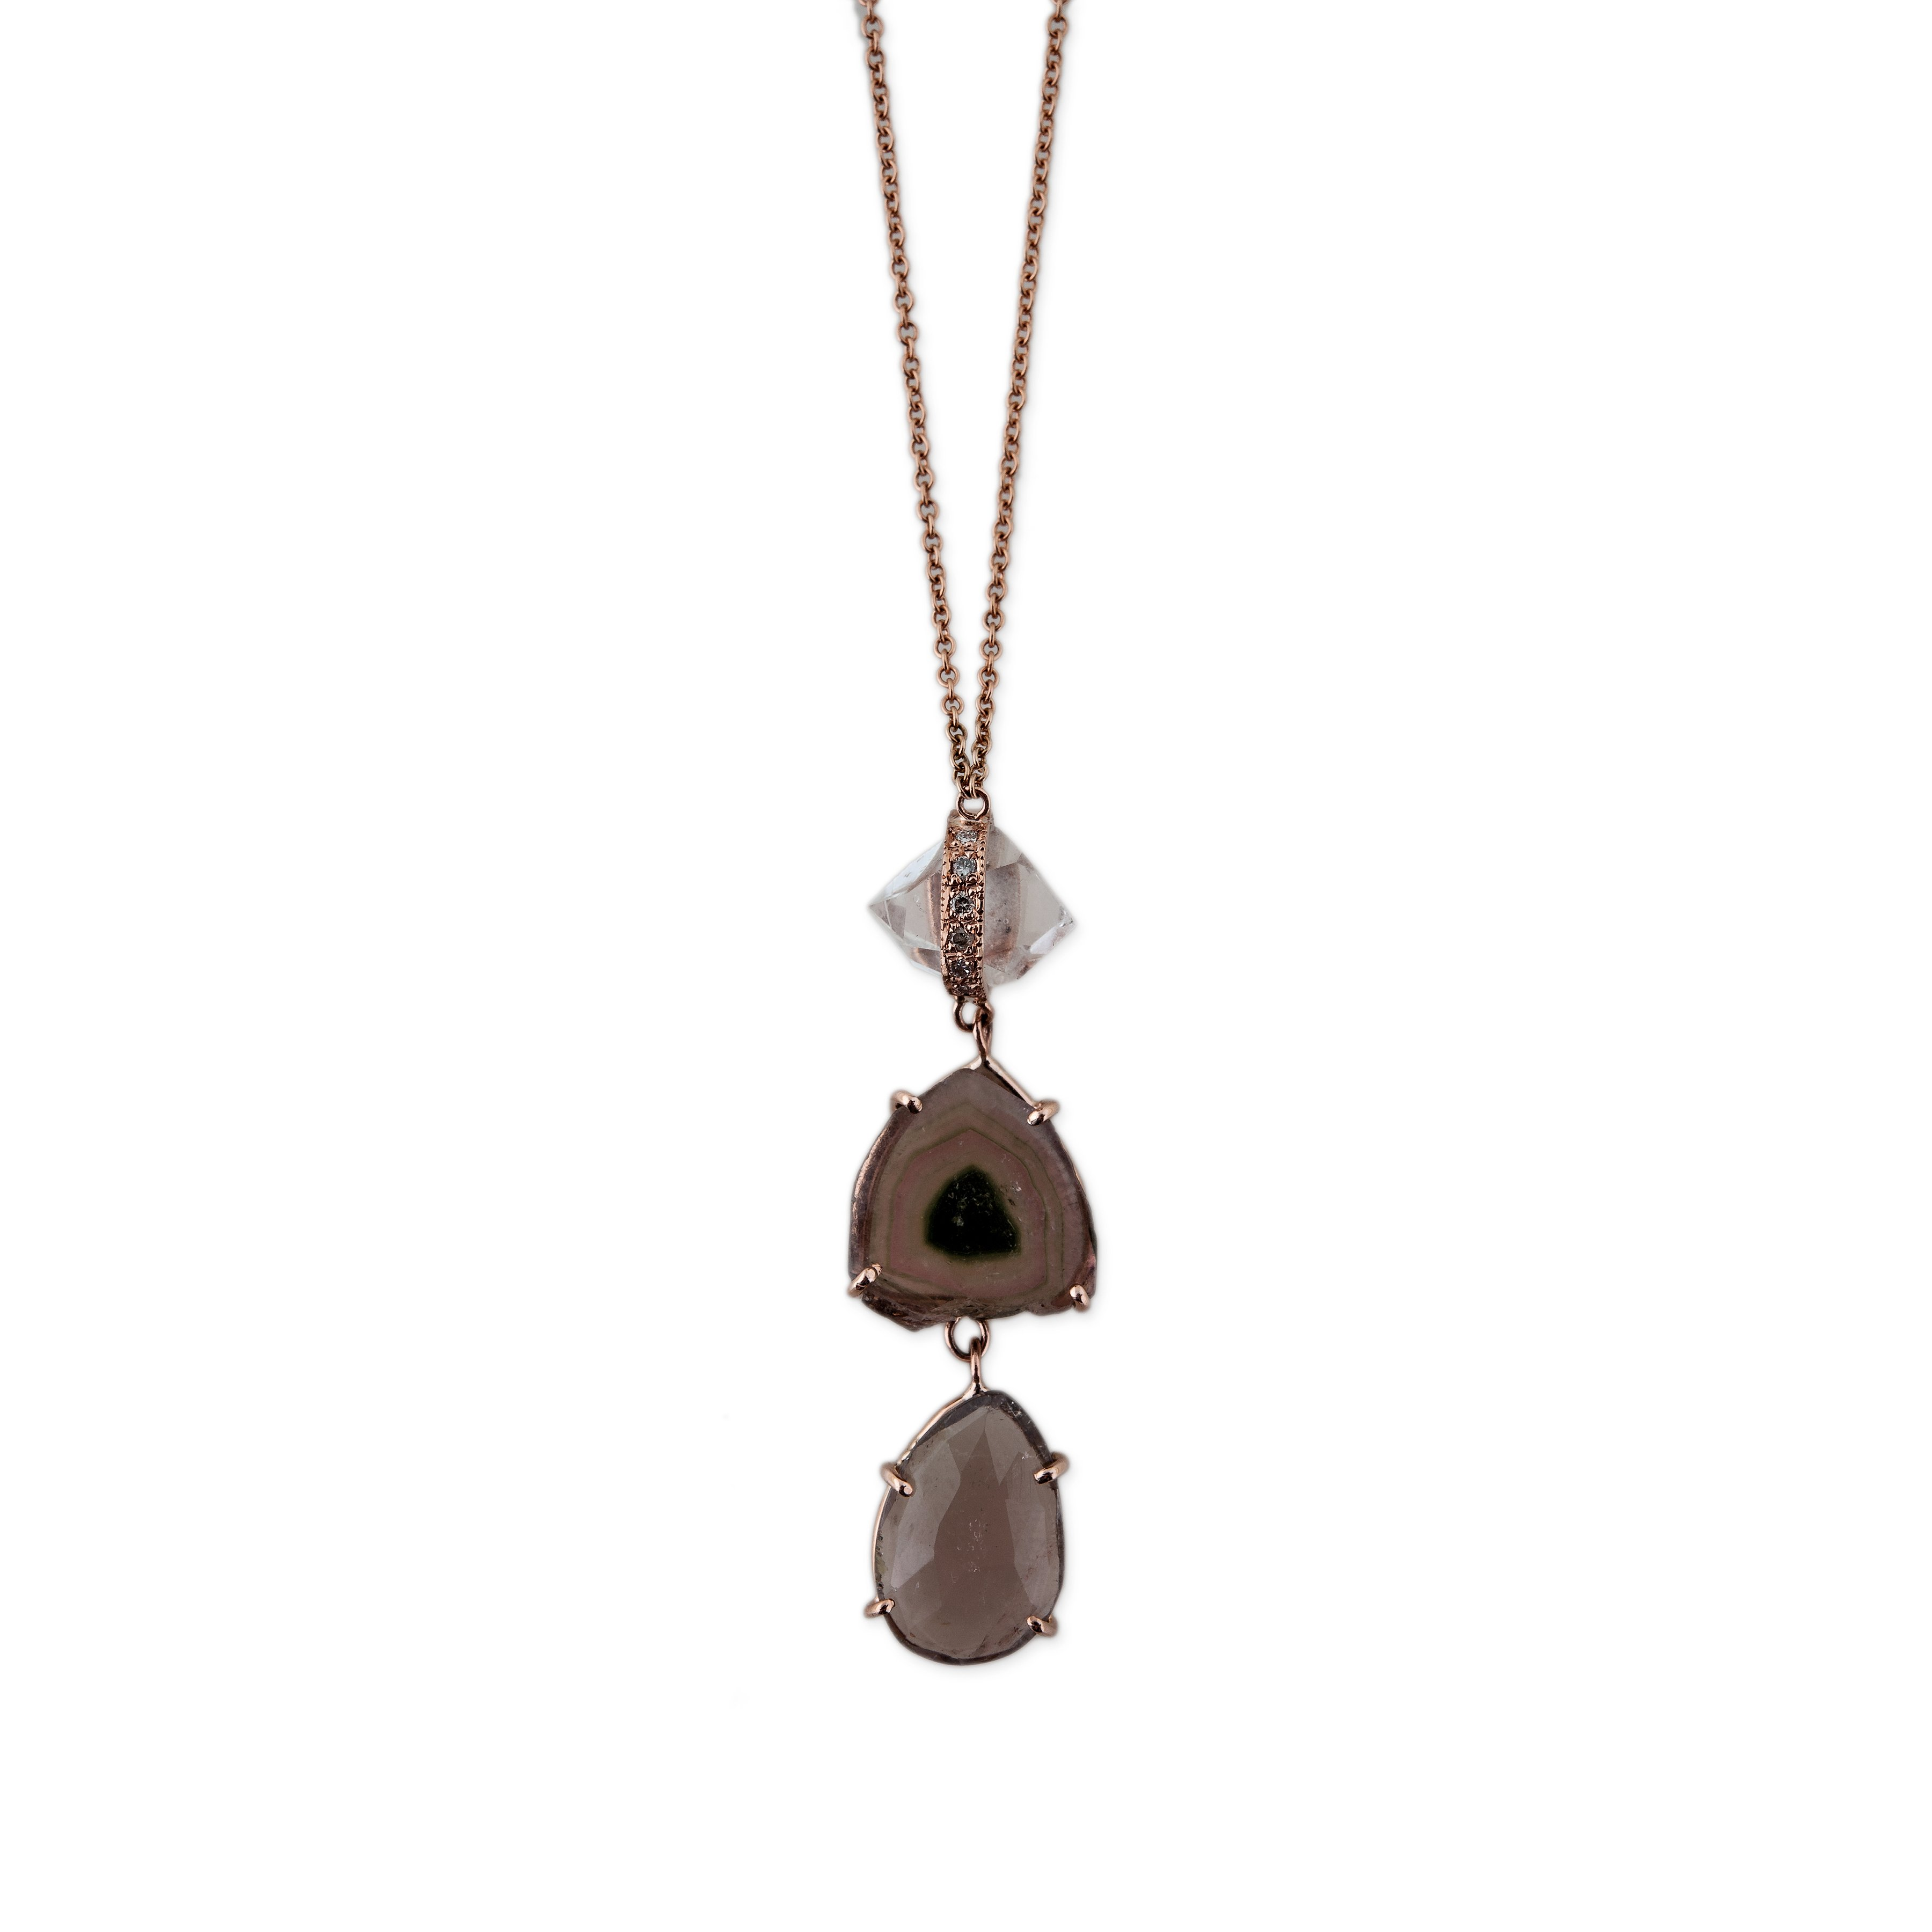 Image of Herkimer Watermelon and Topaz Necklace